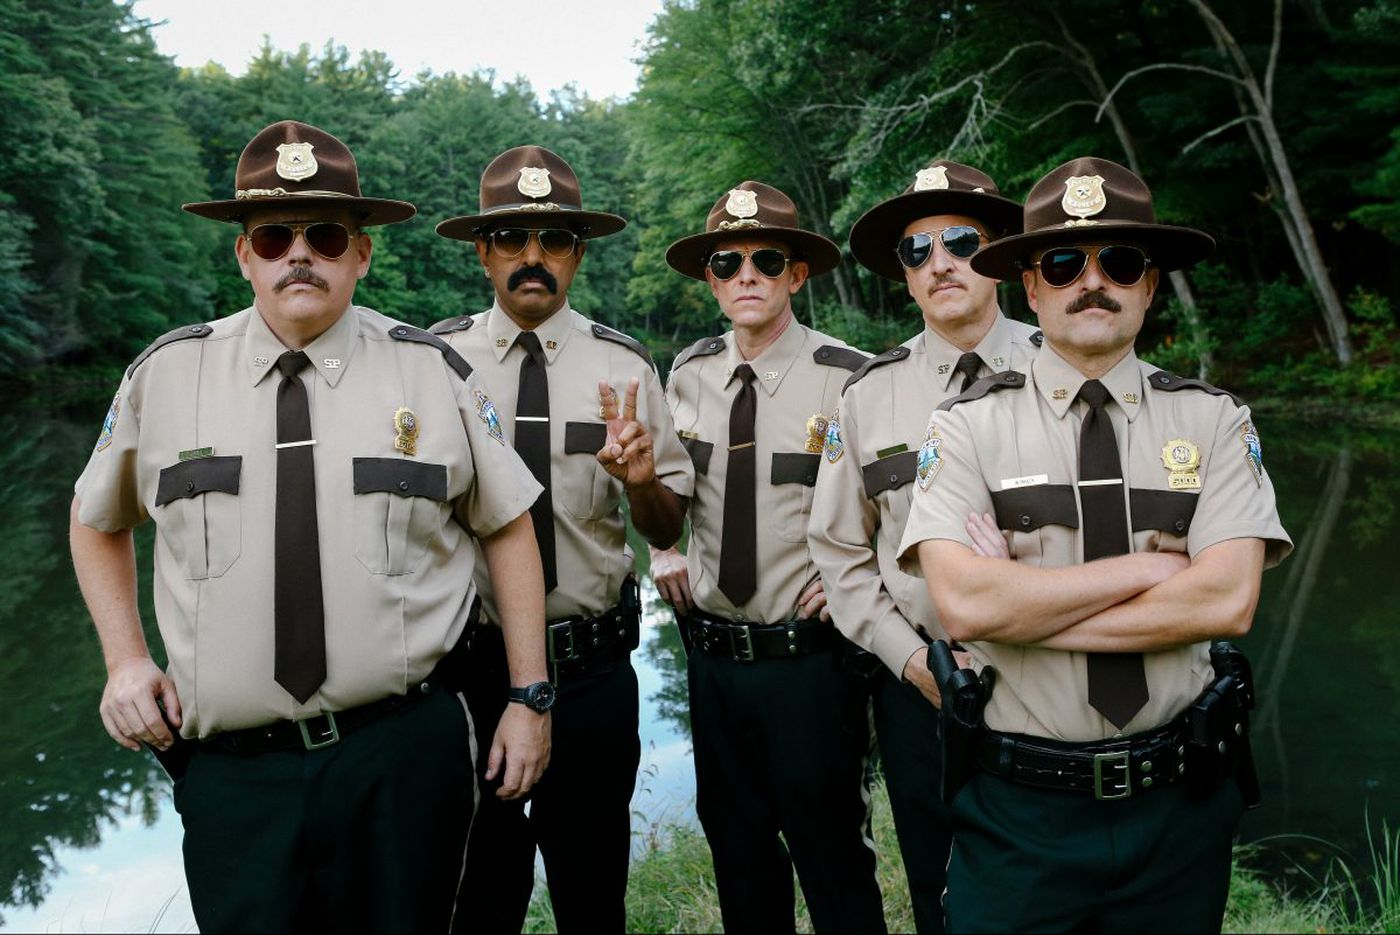 'Super Troopers' returns on 4/20, but the sequel might wreck your buzz